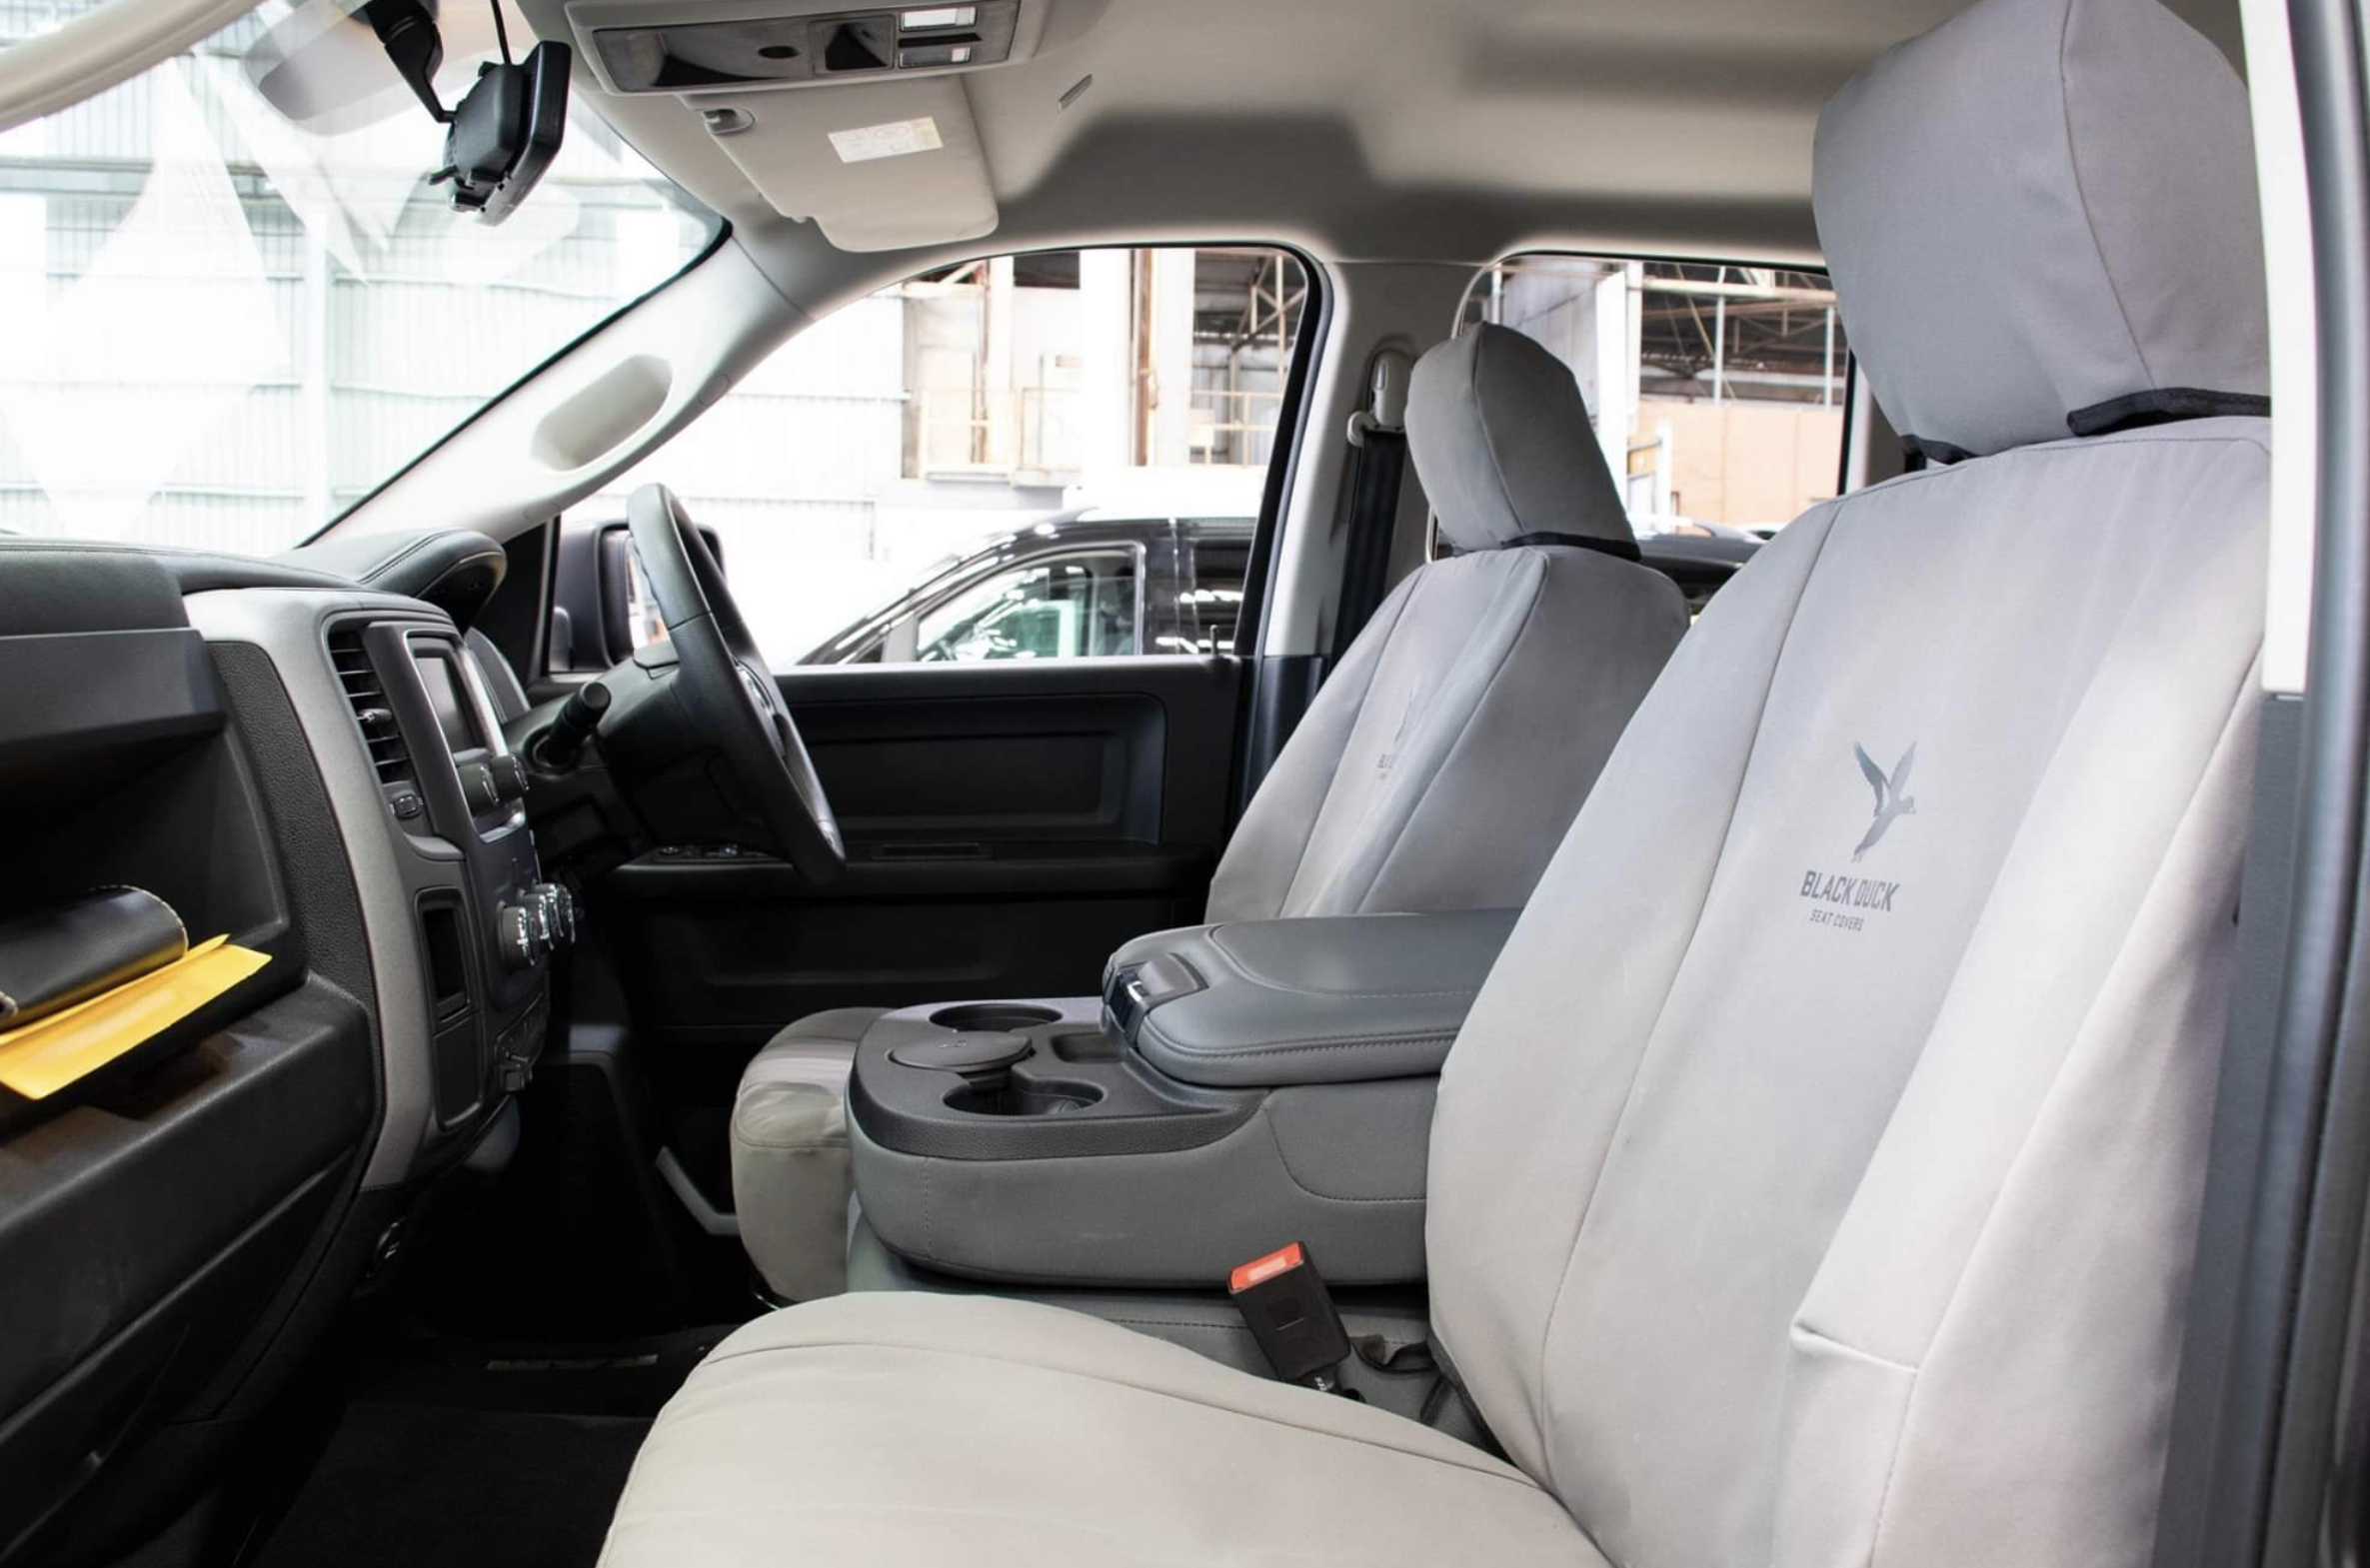 Black Duck Seat Covers To Suit Dodge Ram 1500 Express Dual Cab